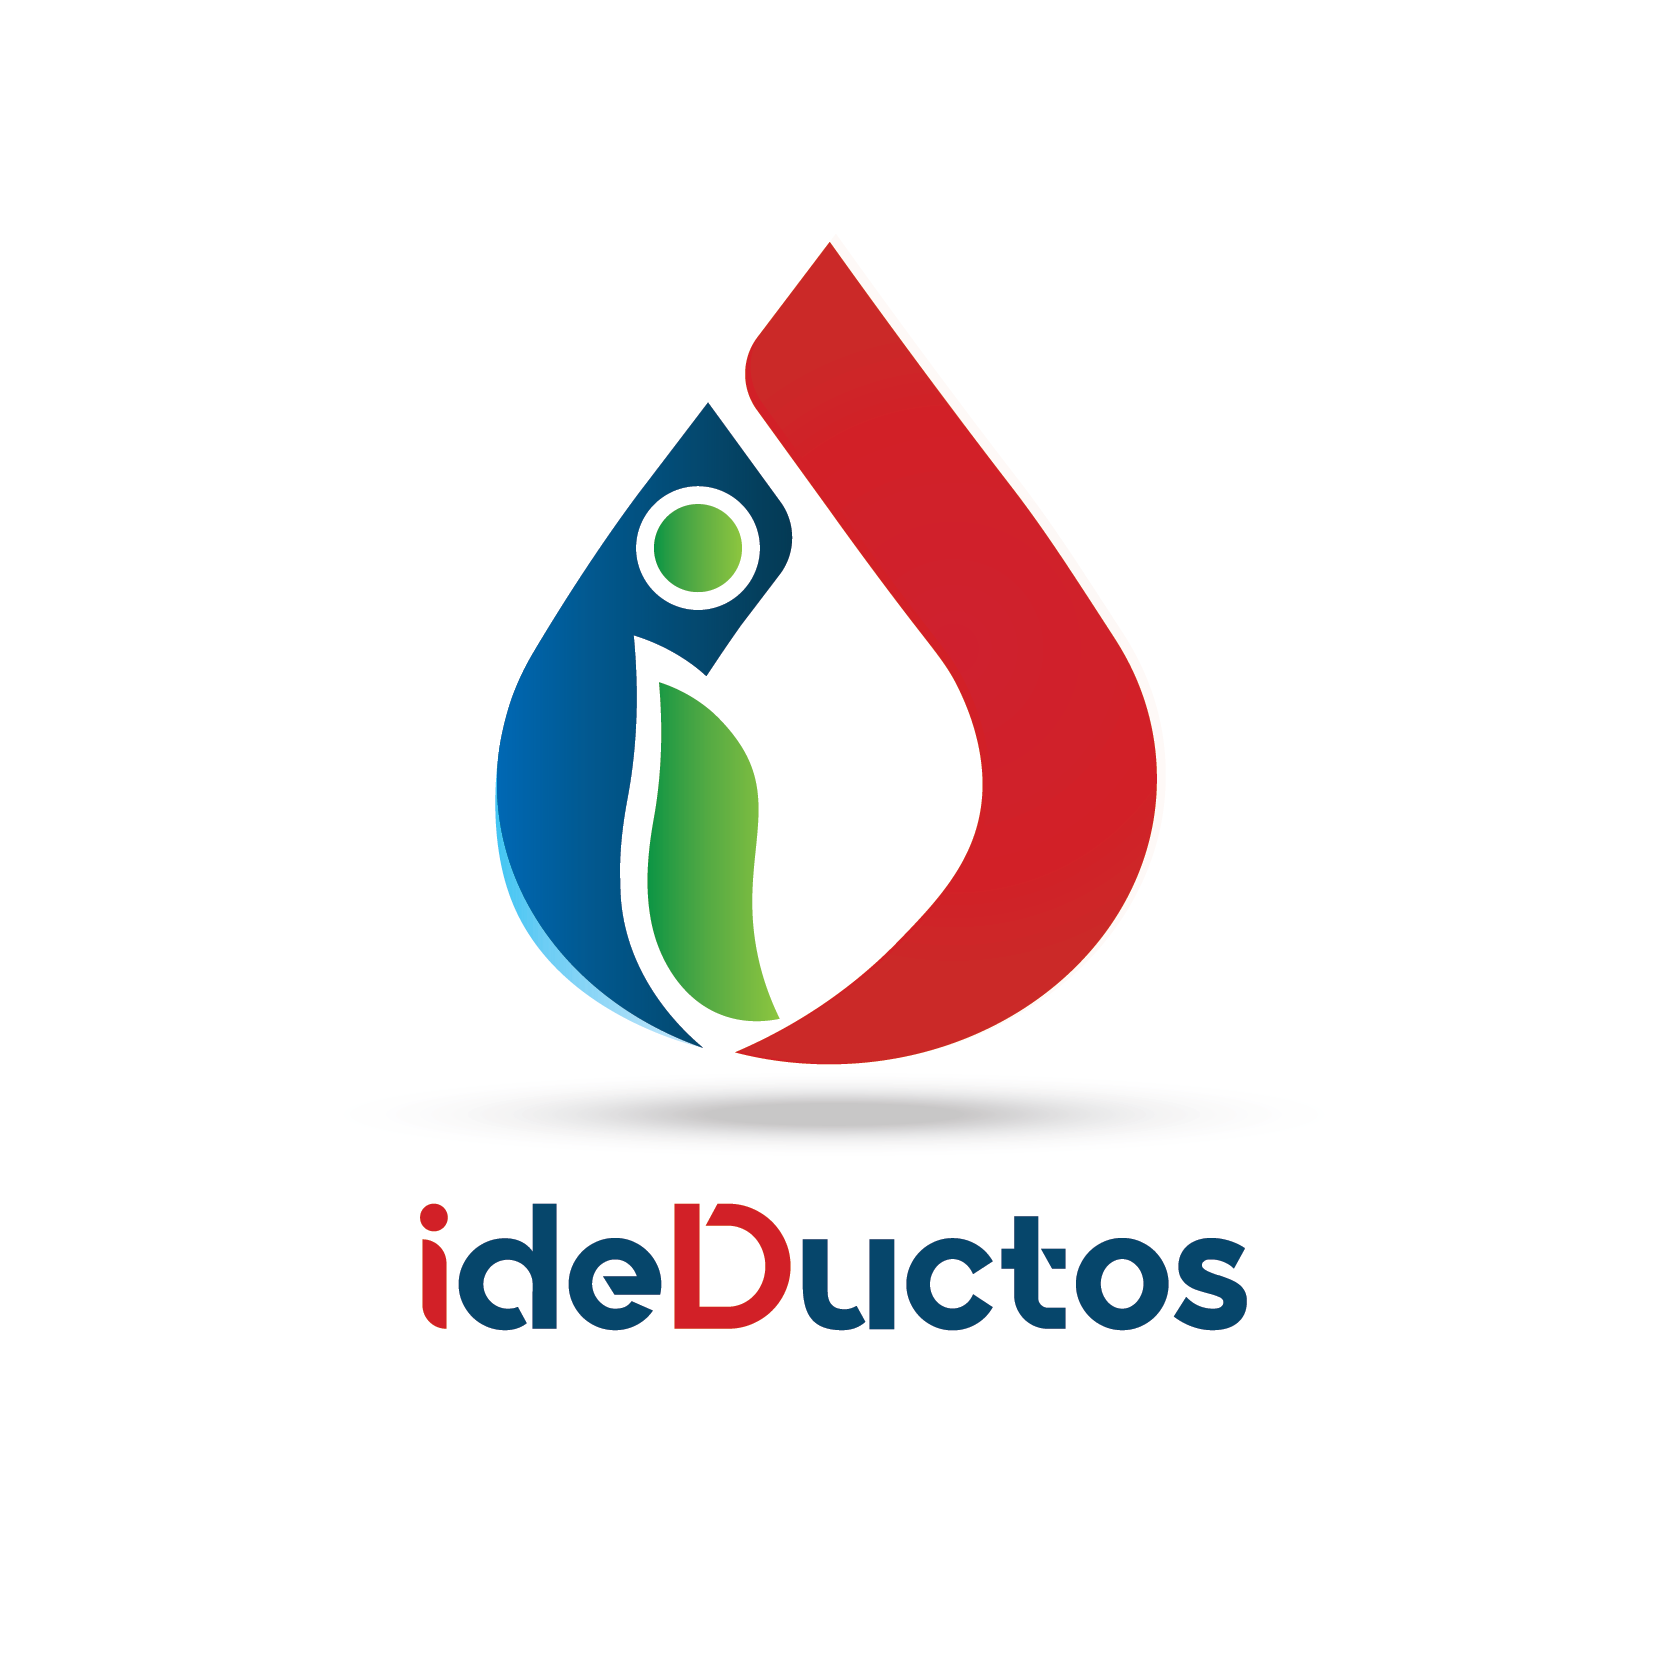 Logo ideDuctos